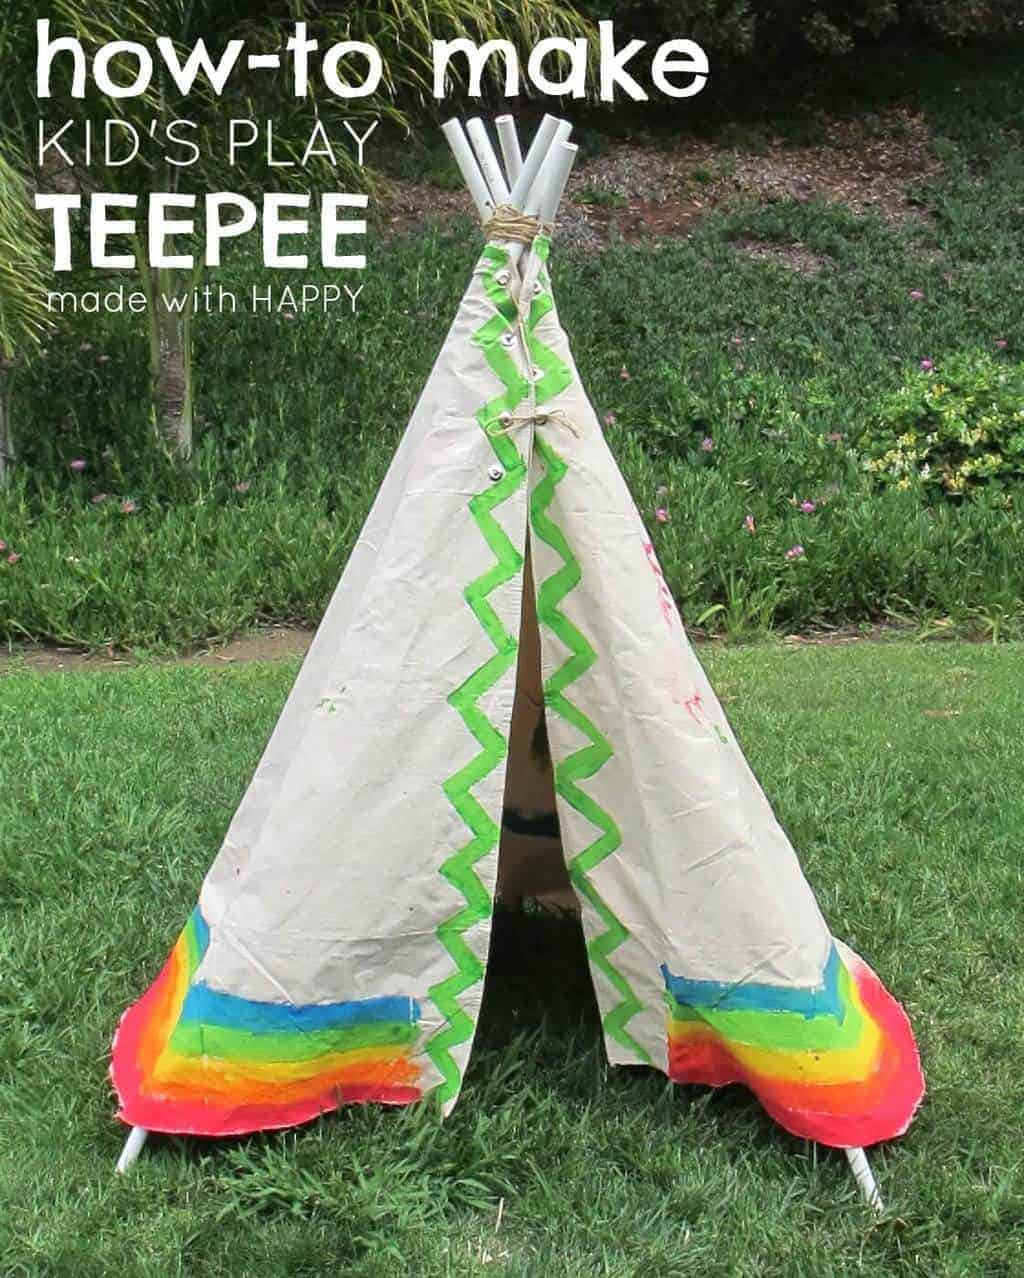 Kids Teepee made from canvas